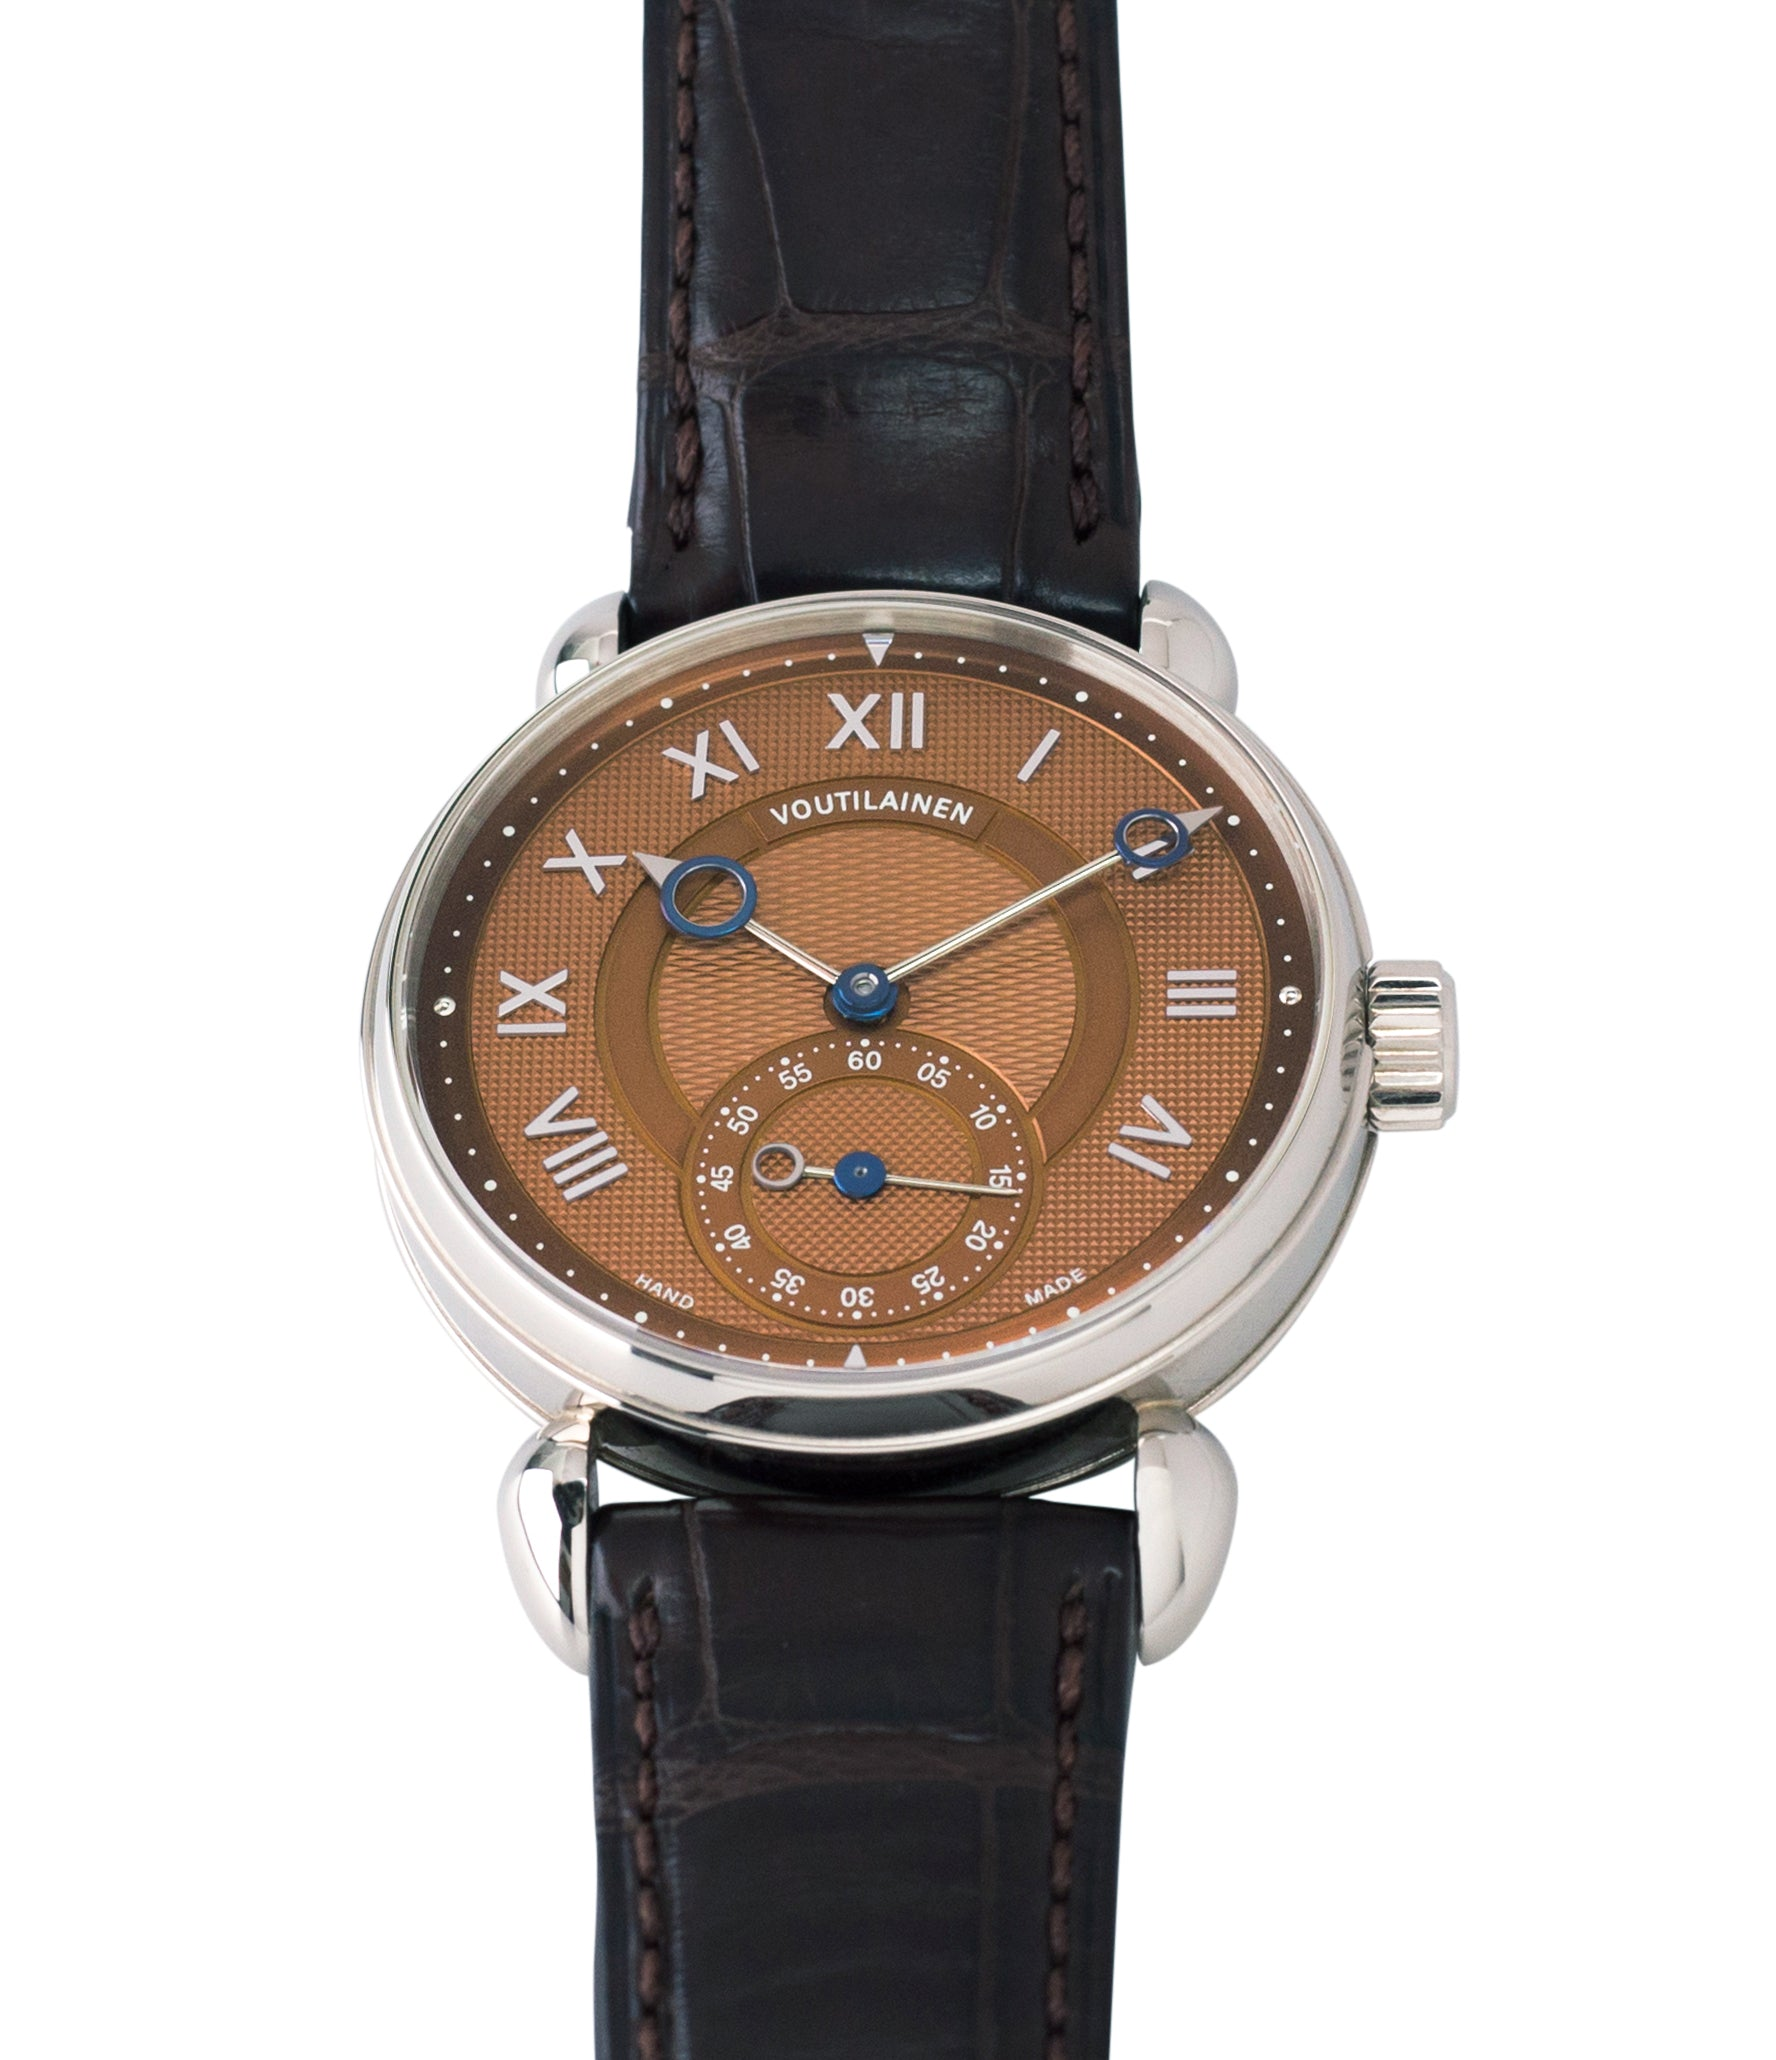 selling preowned Kari Voutilainen Observatoire Limited Edition rare brown dial watch online at A Collected Man London specialist endorsed seller of pre-owned independent watchmakers